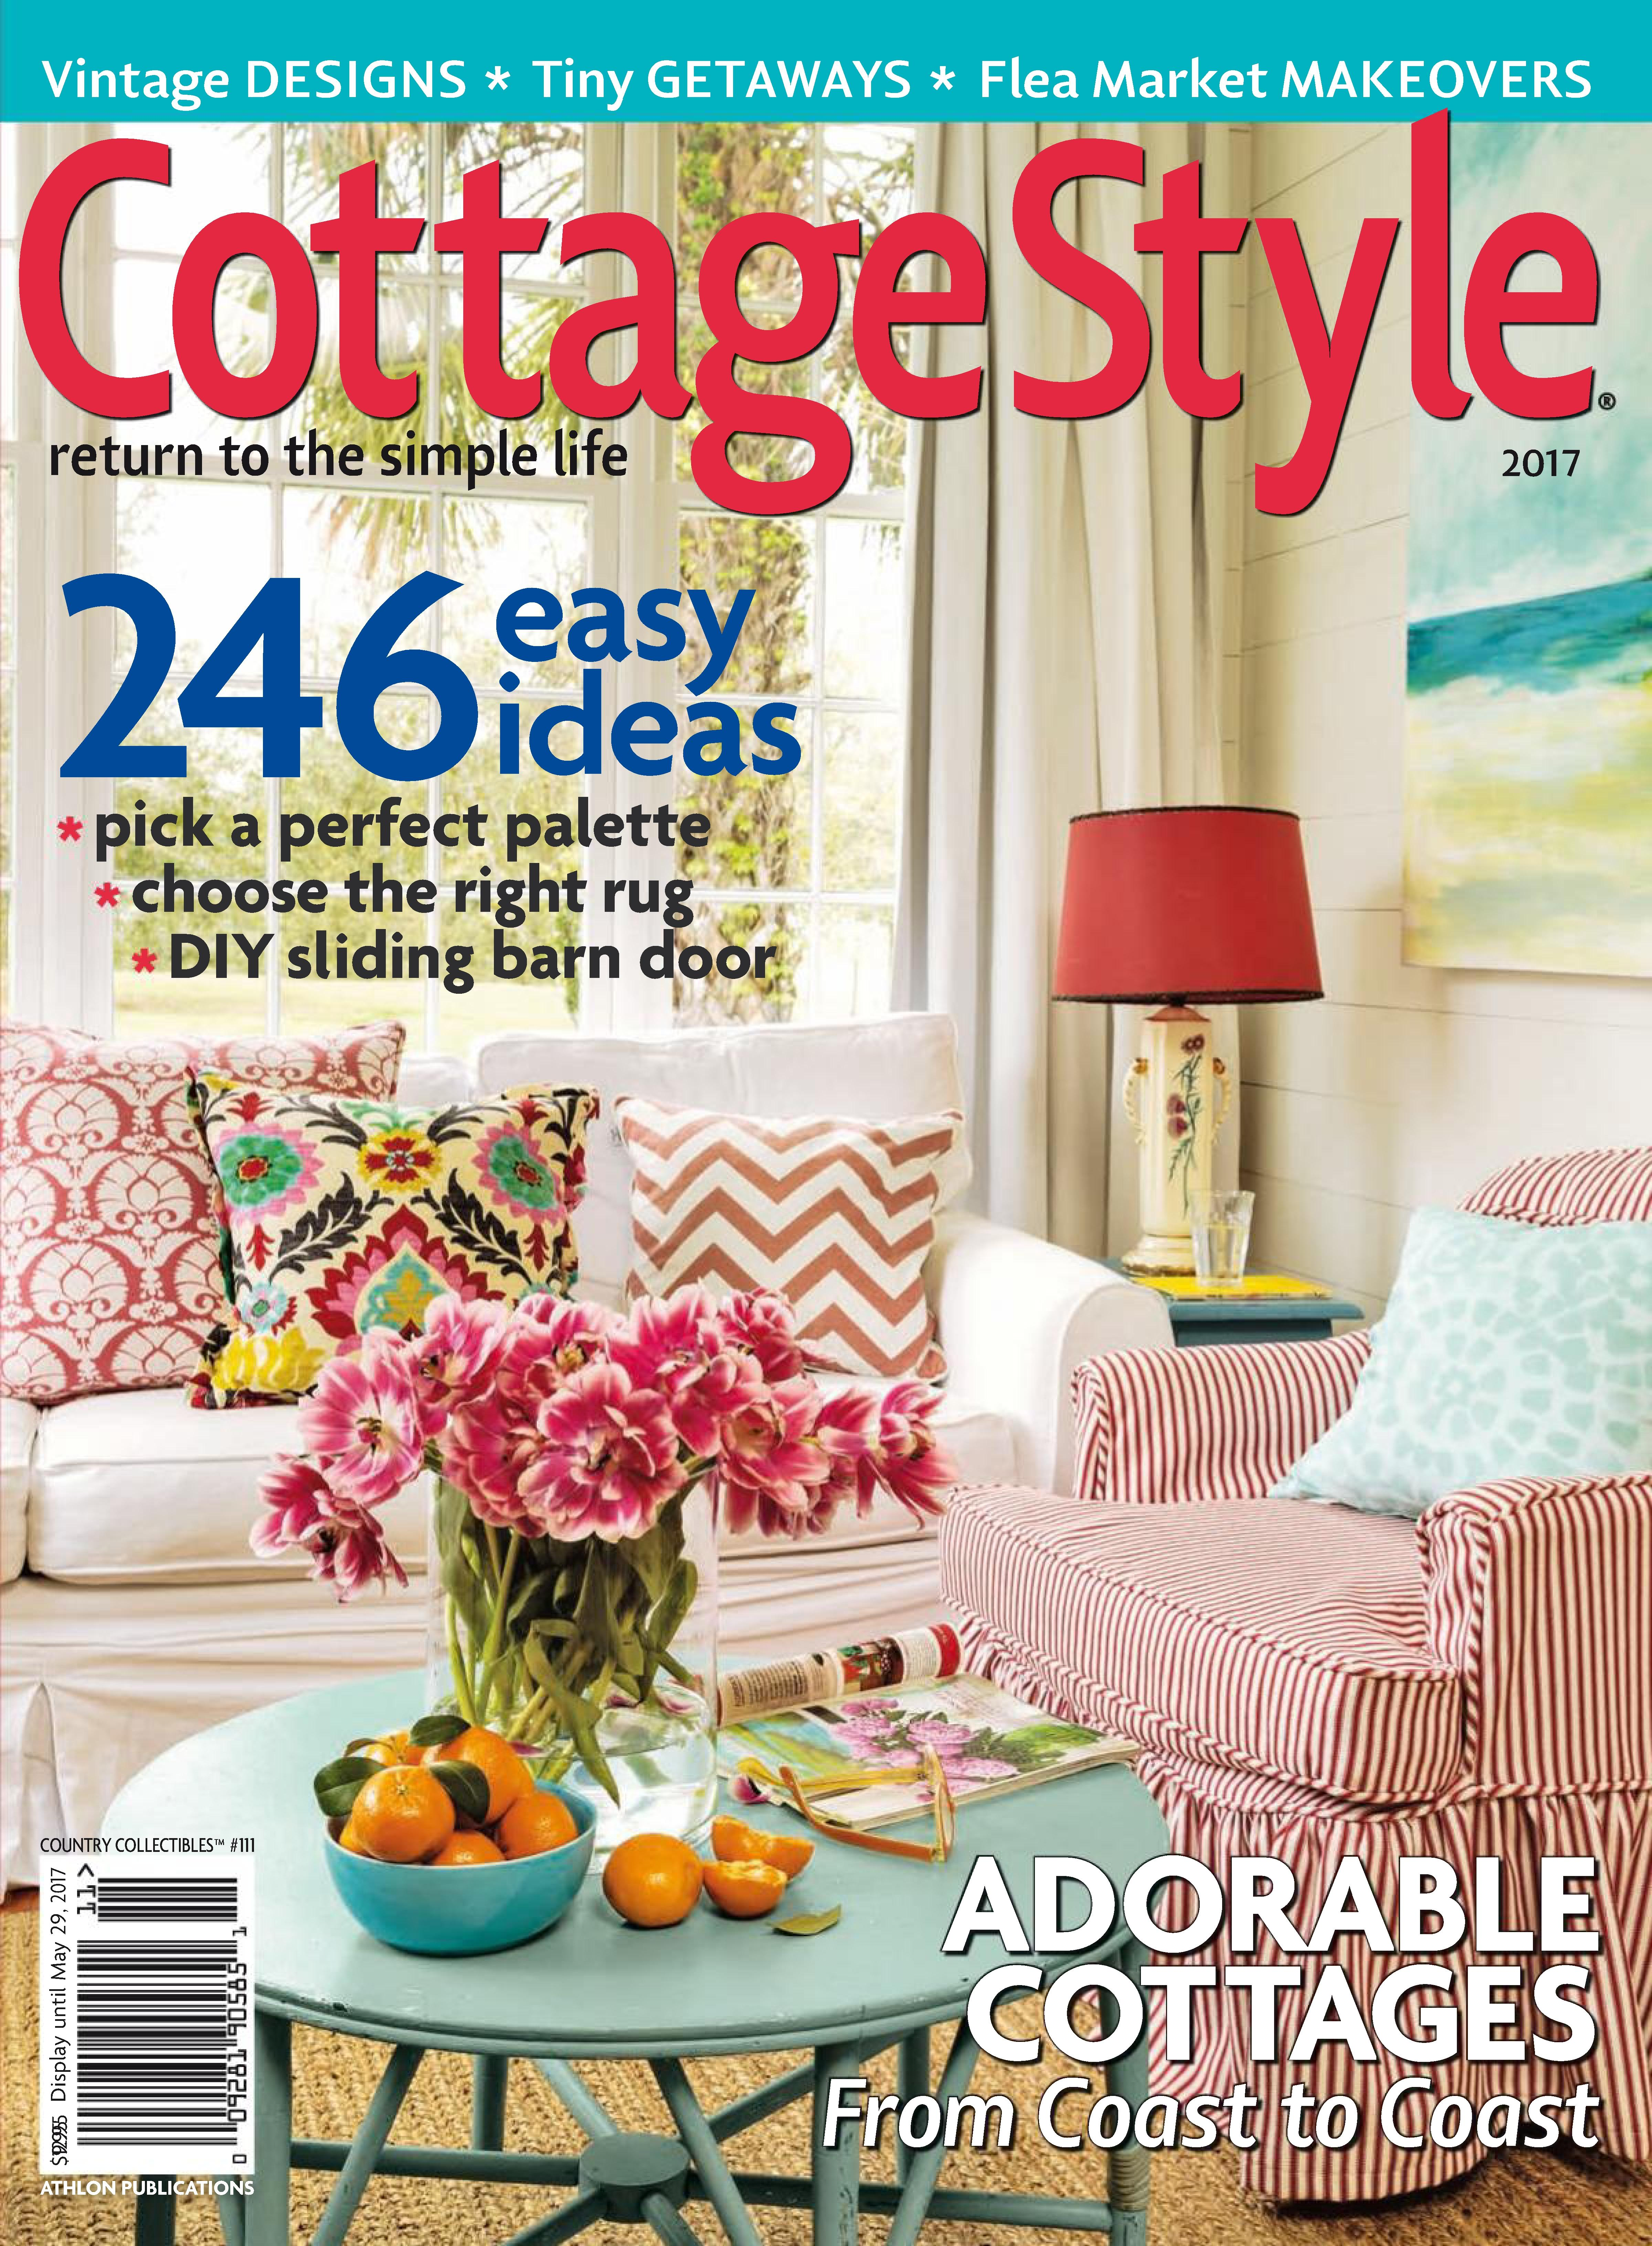 country collectibles cottage style subscription rh zinio com